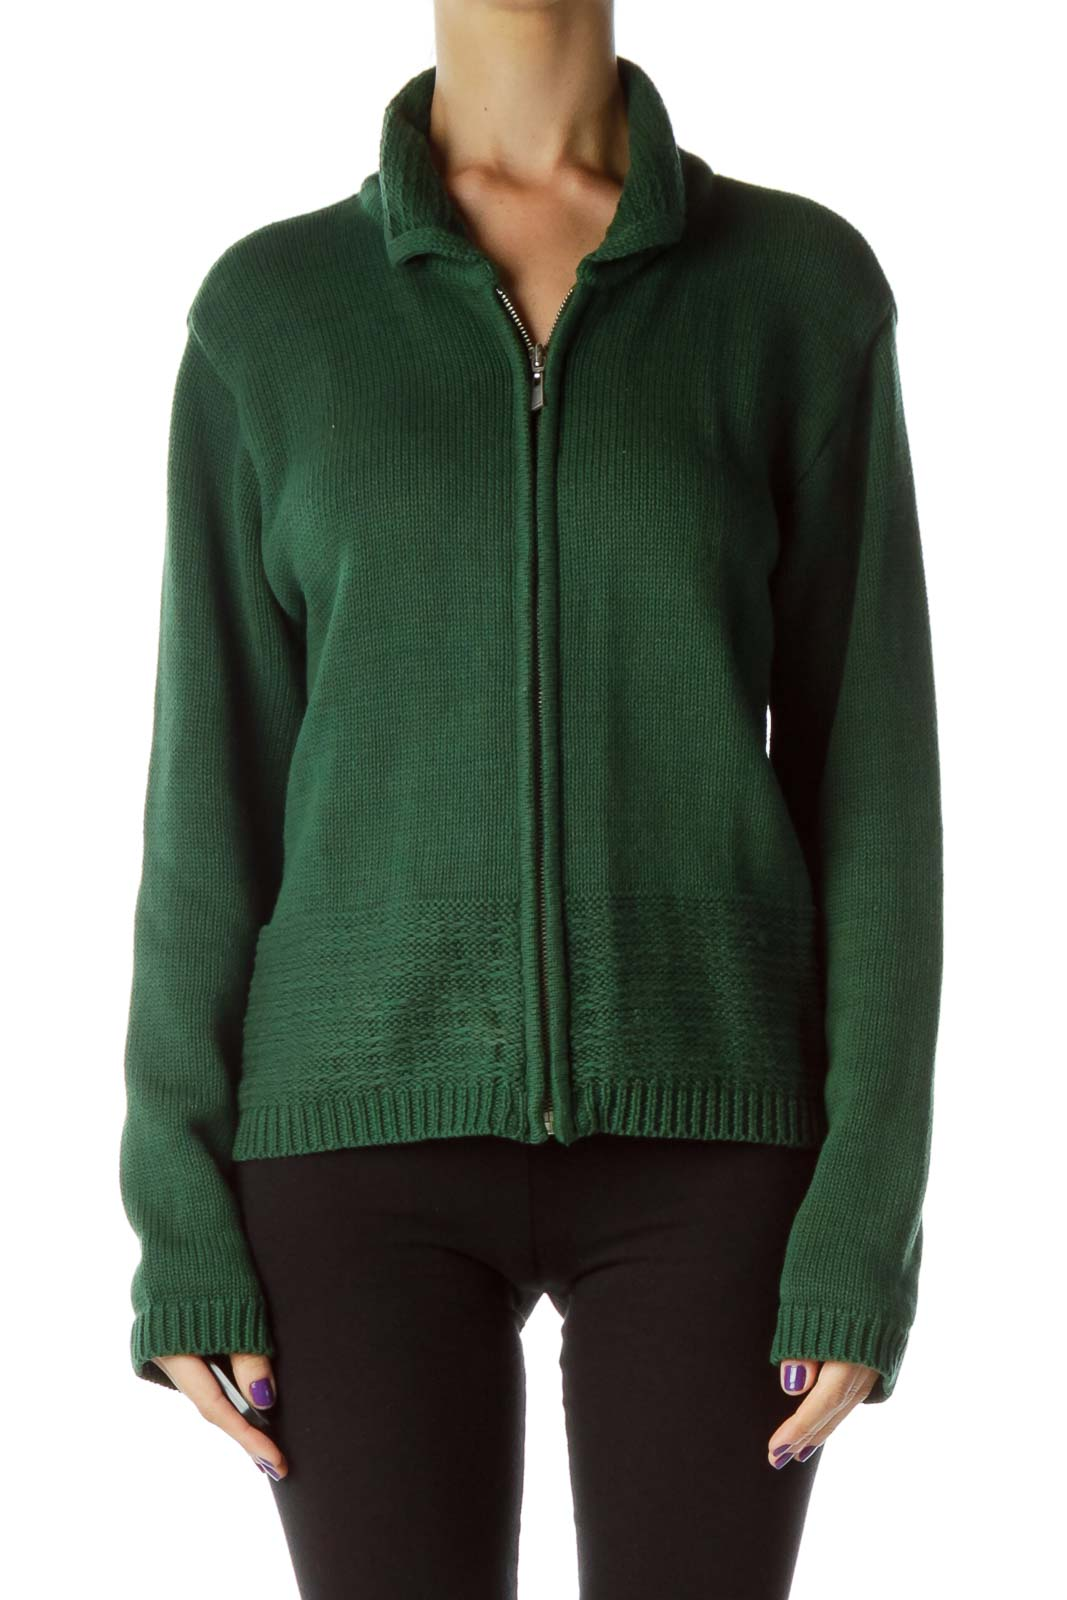 Green Zippered Sweater